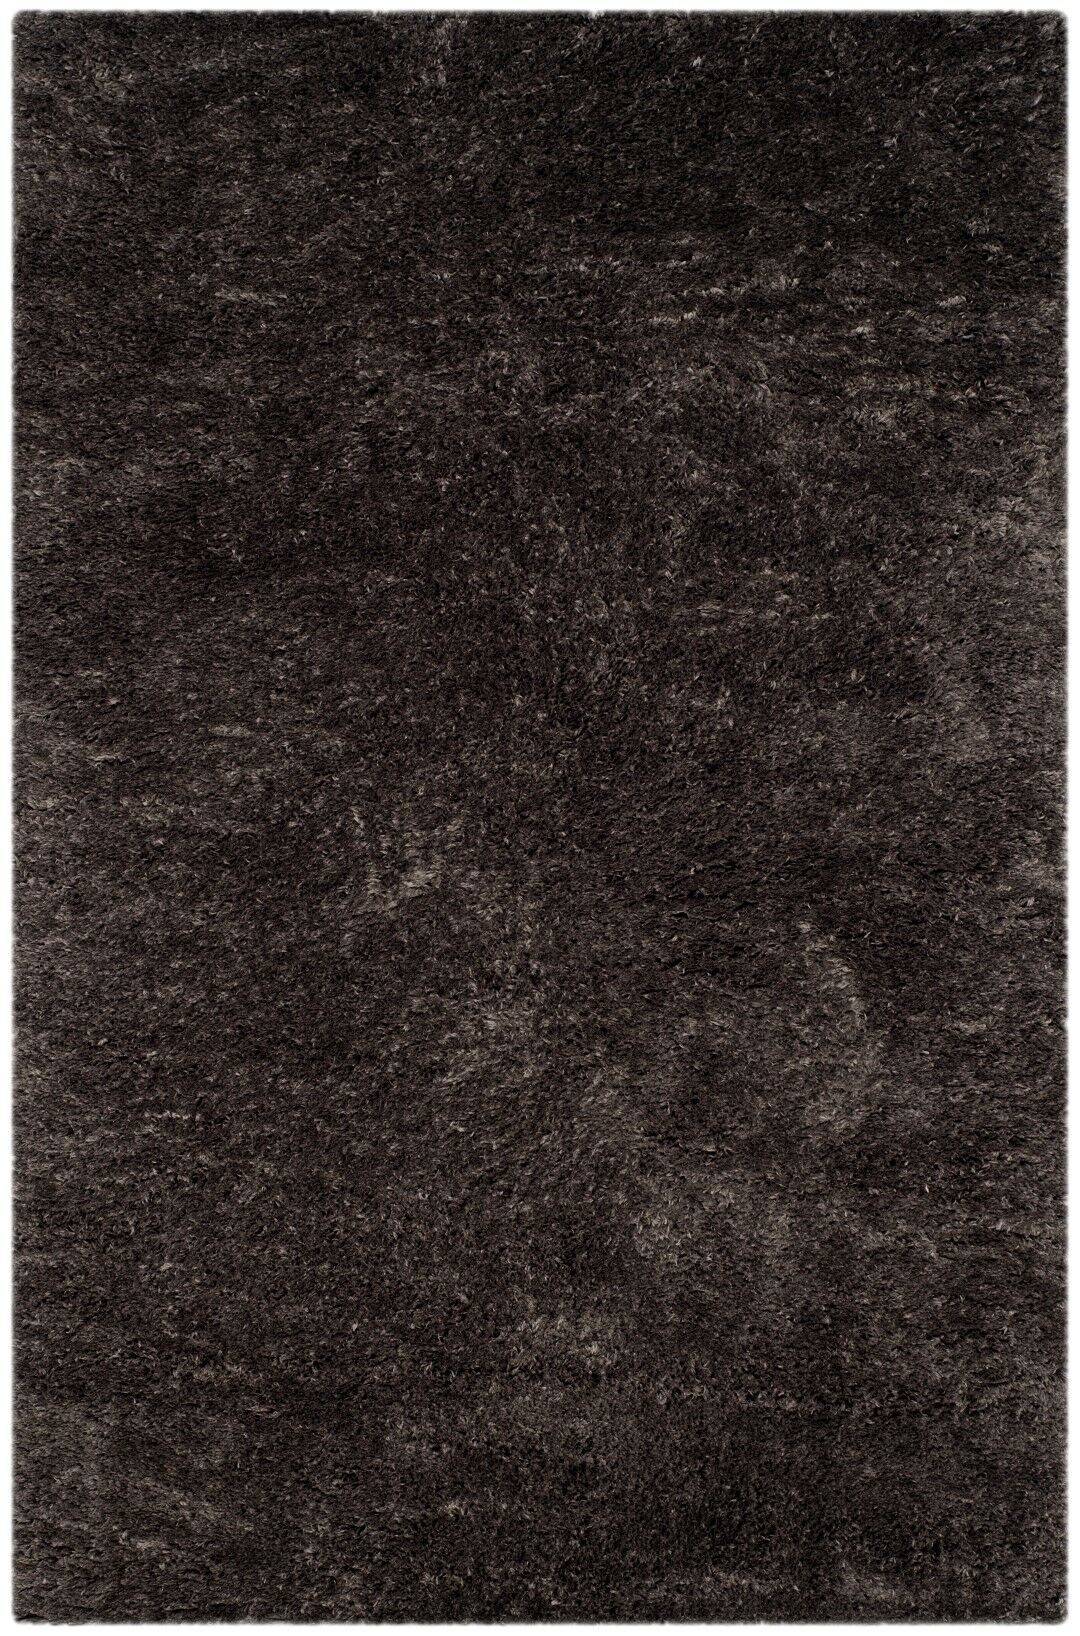 Kenney Dark Gray Area Rug Rug Size: Rectangle 5'1